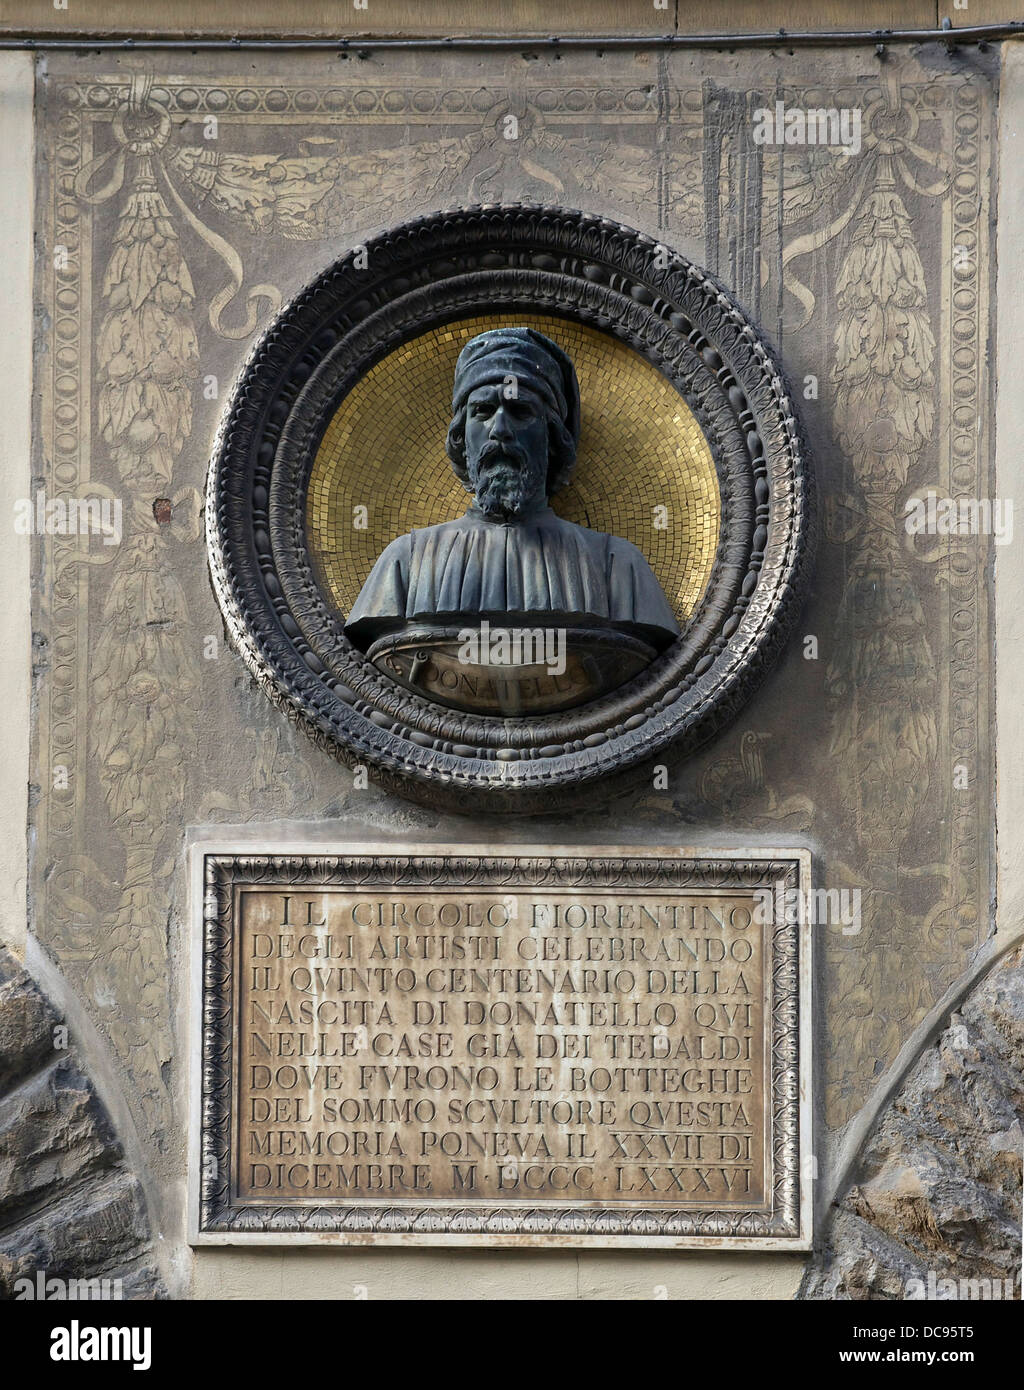 Tribute to Donatello, on the façade of the Palazzo Naldini in Florence, Italy. - Stock Image